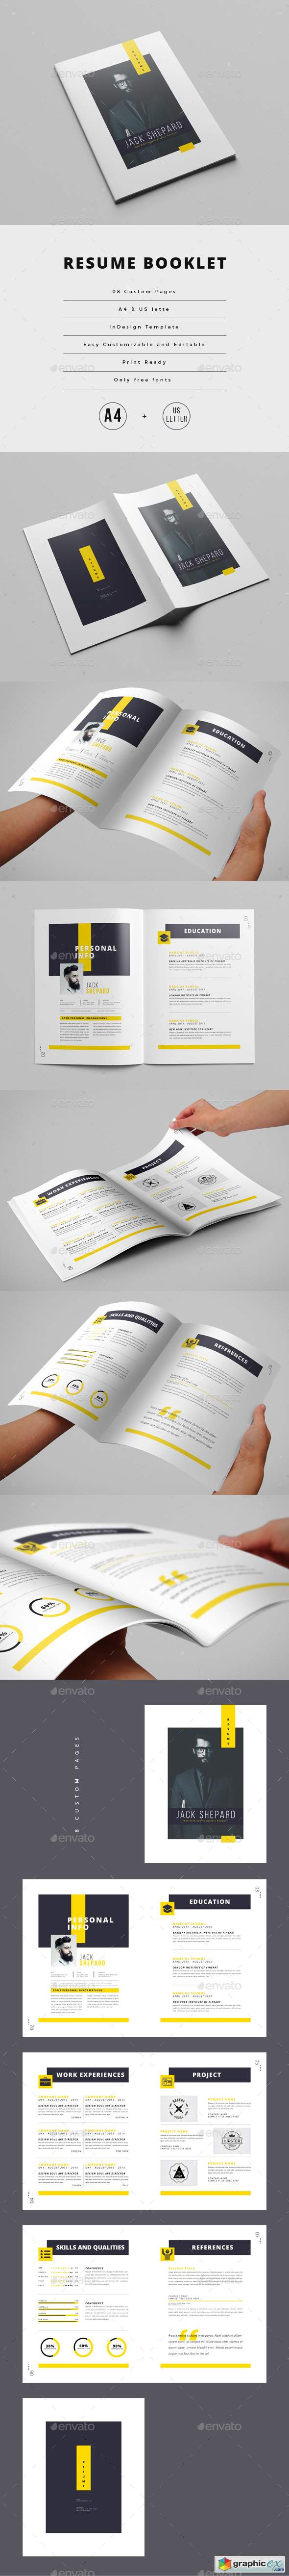 Resume Booklet (8 pages) 22043136